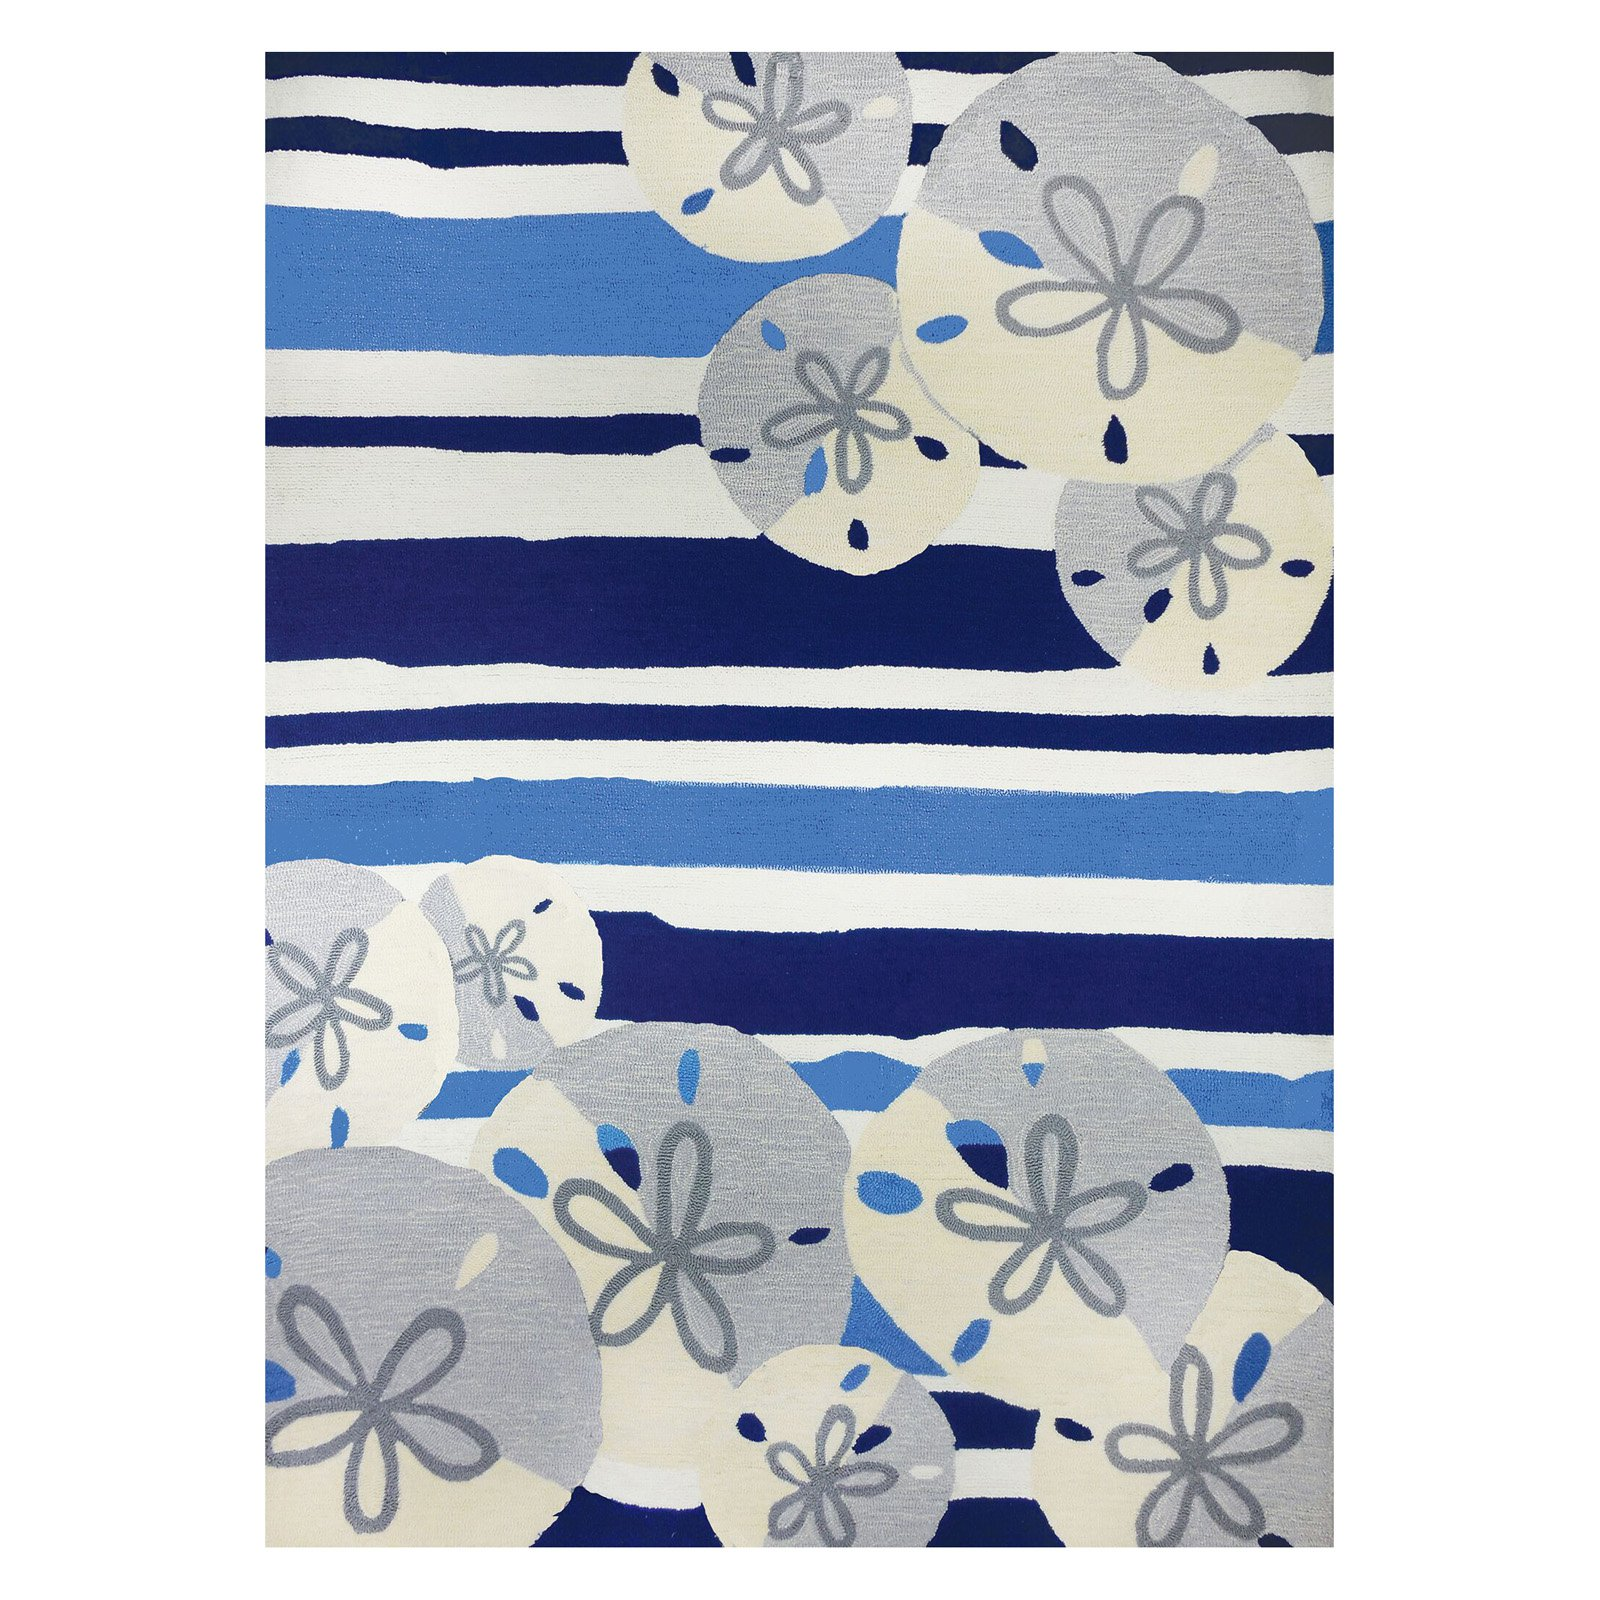 Homefires Sand Dollars On Stripes Indoor/Outdoor Area Rug